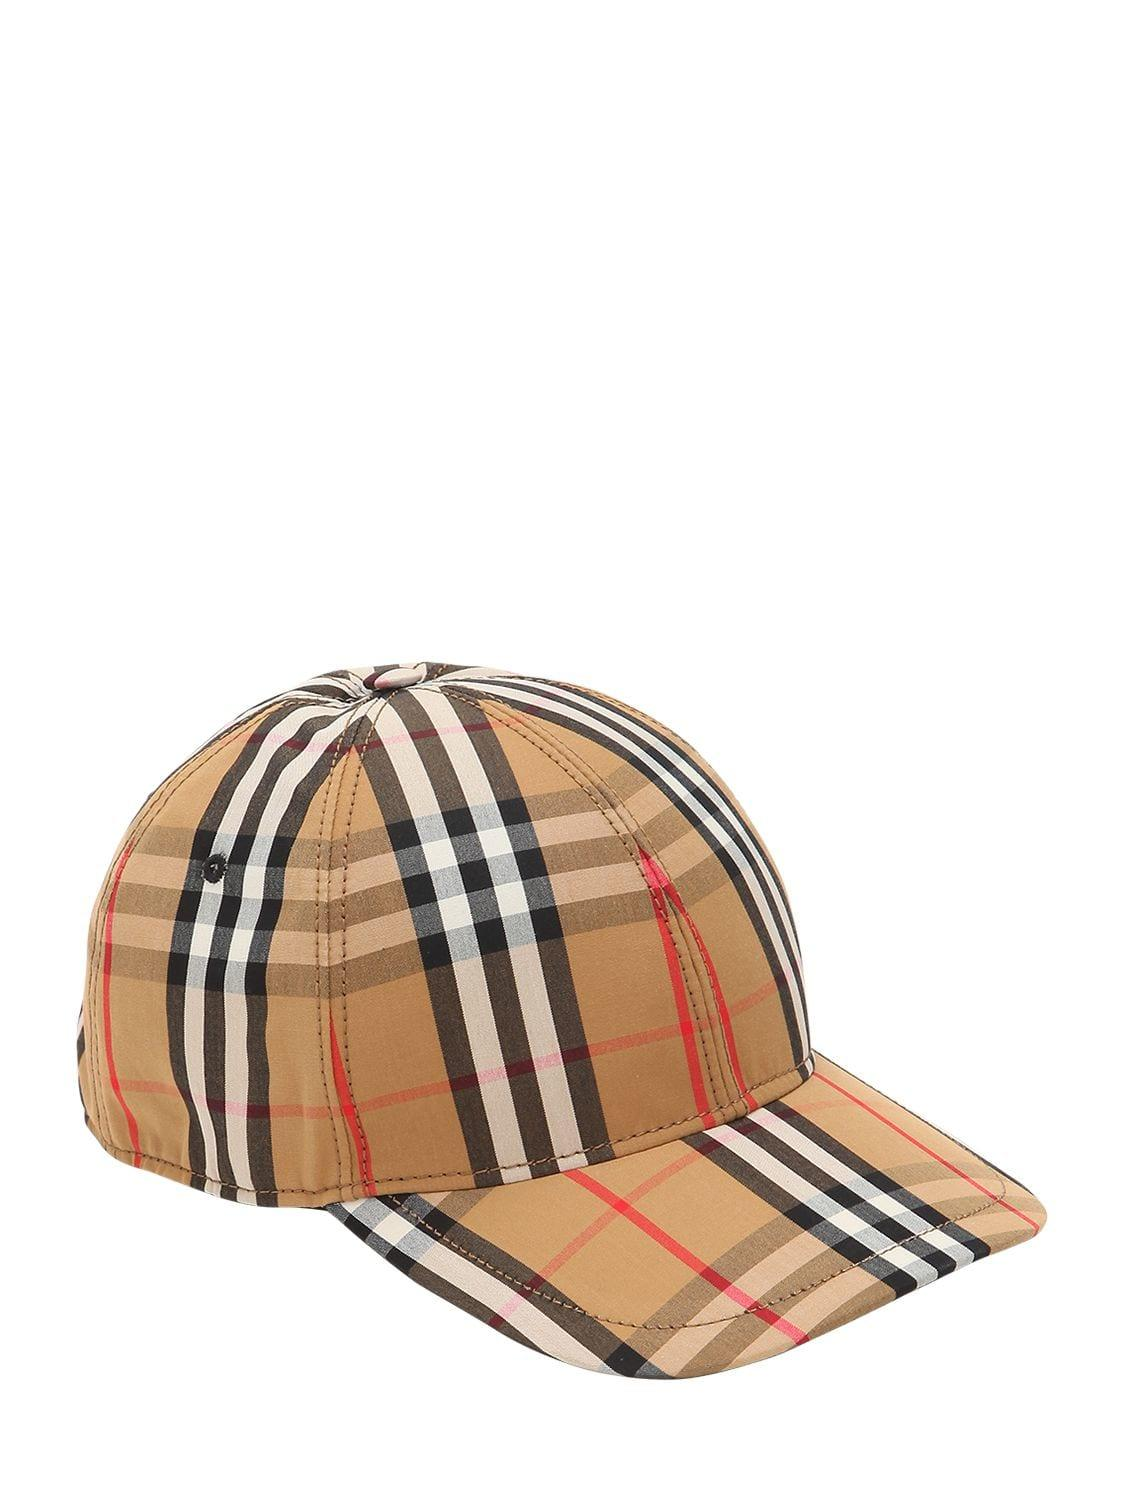 f67dc54f Burberry Vintage Check Cotton Baseball Cap in Natural - Lyst